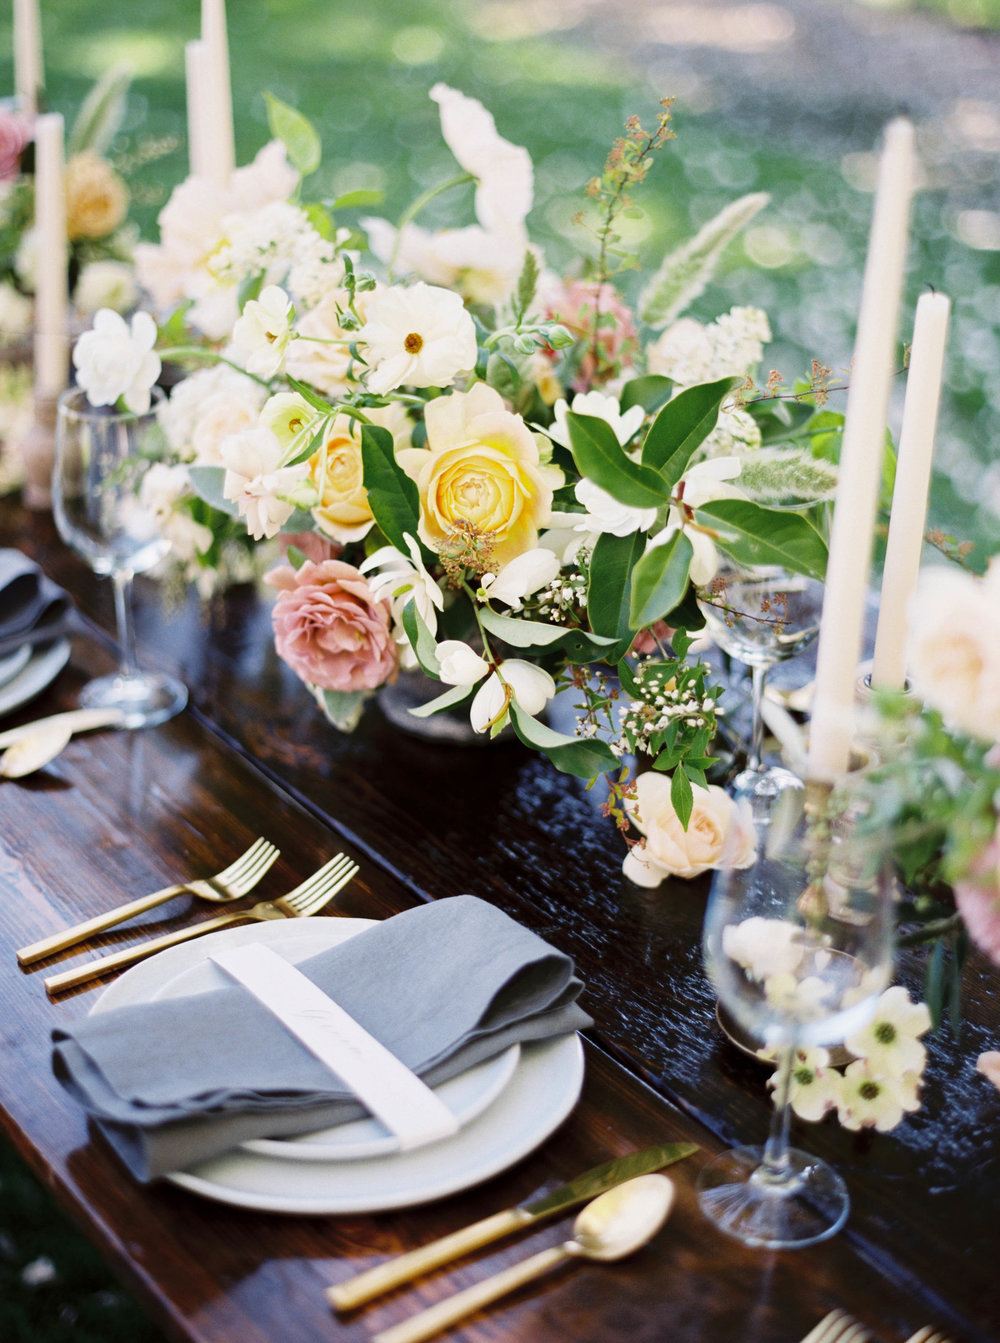 spring wedding table centerpiece for hood river, OR wedding .jpg